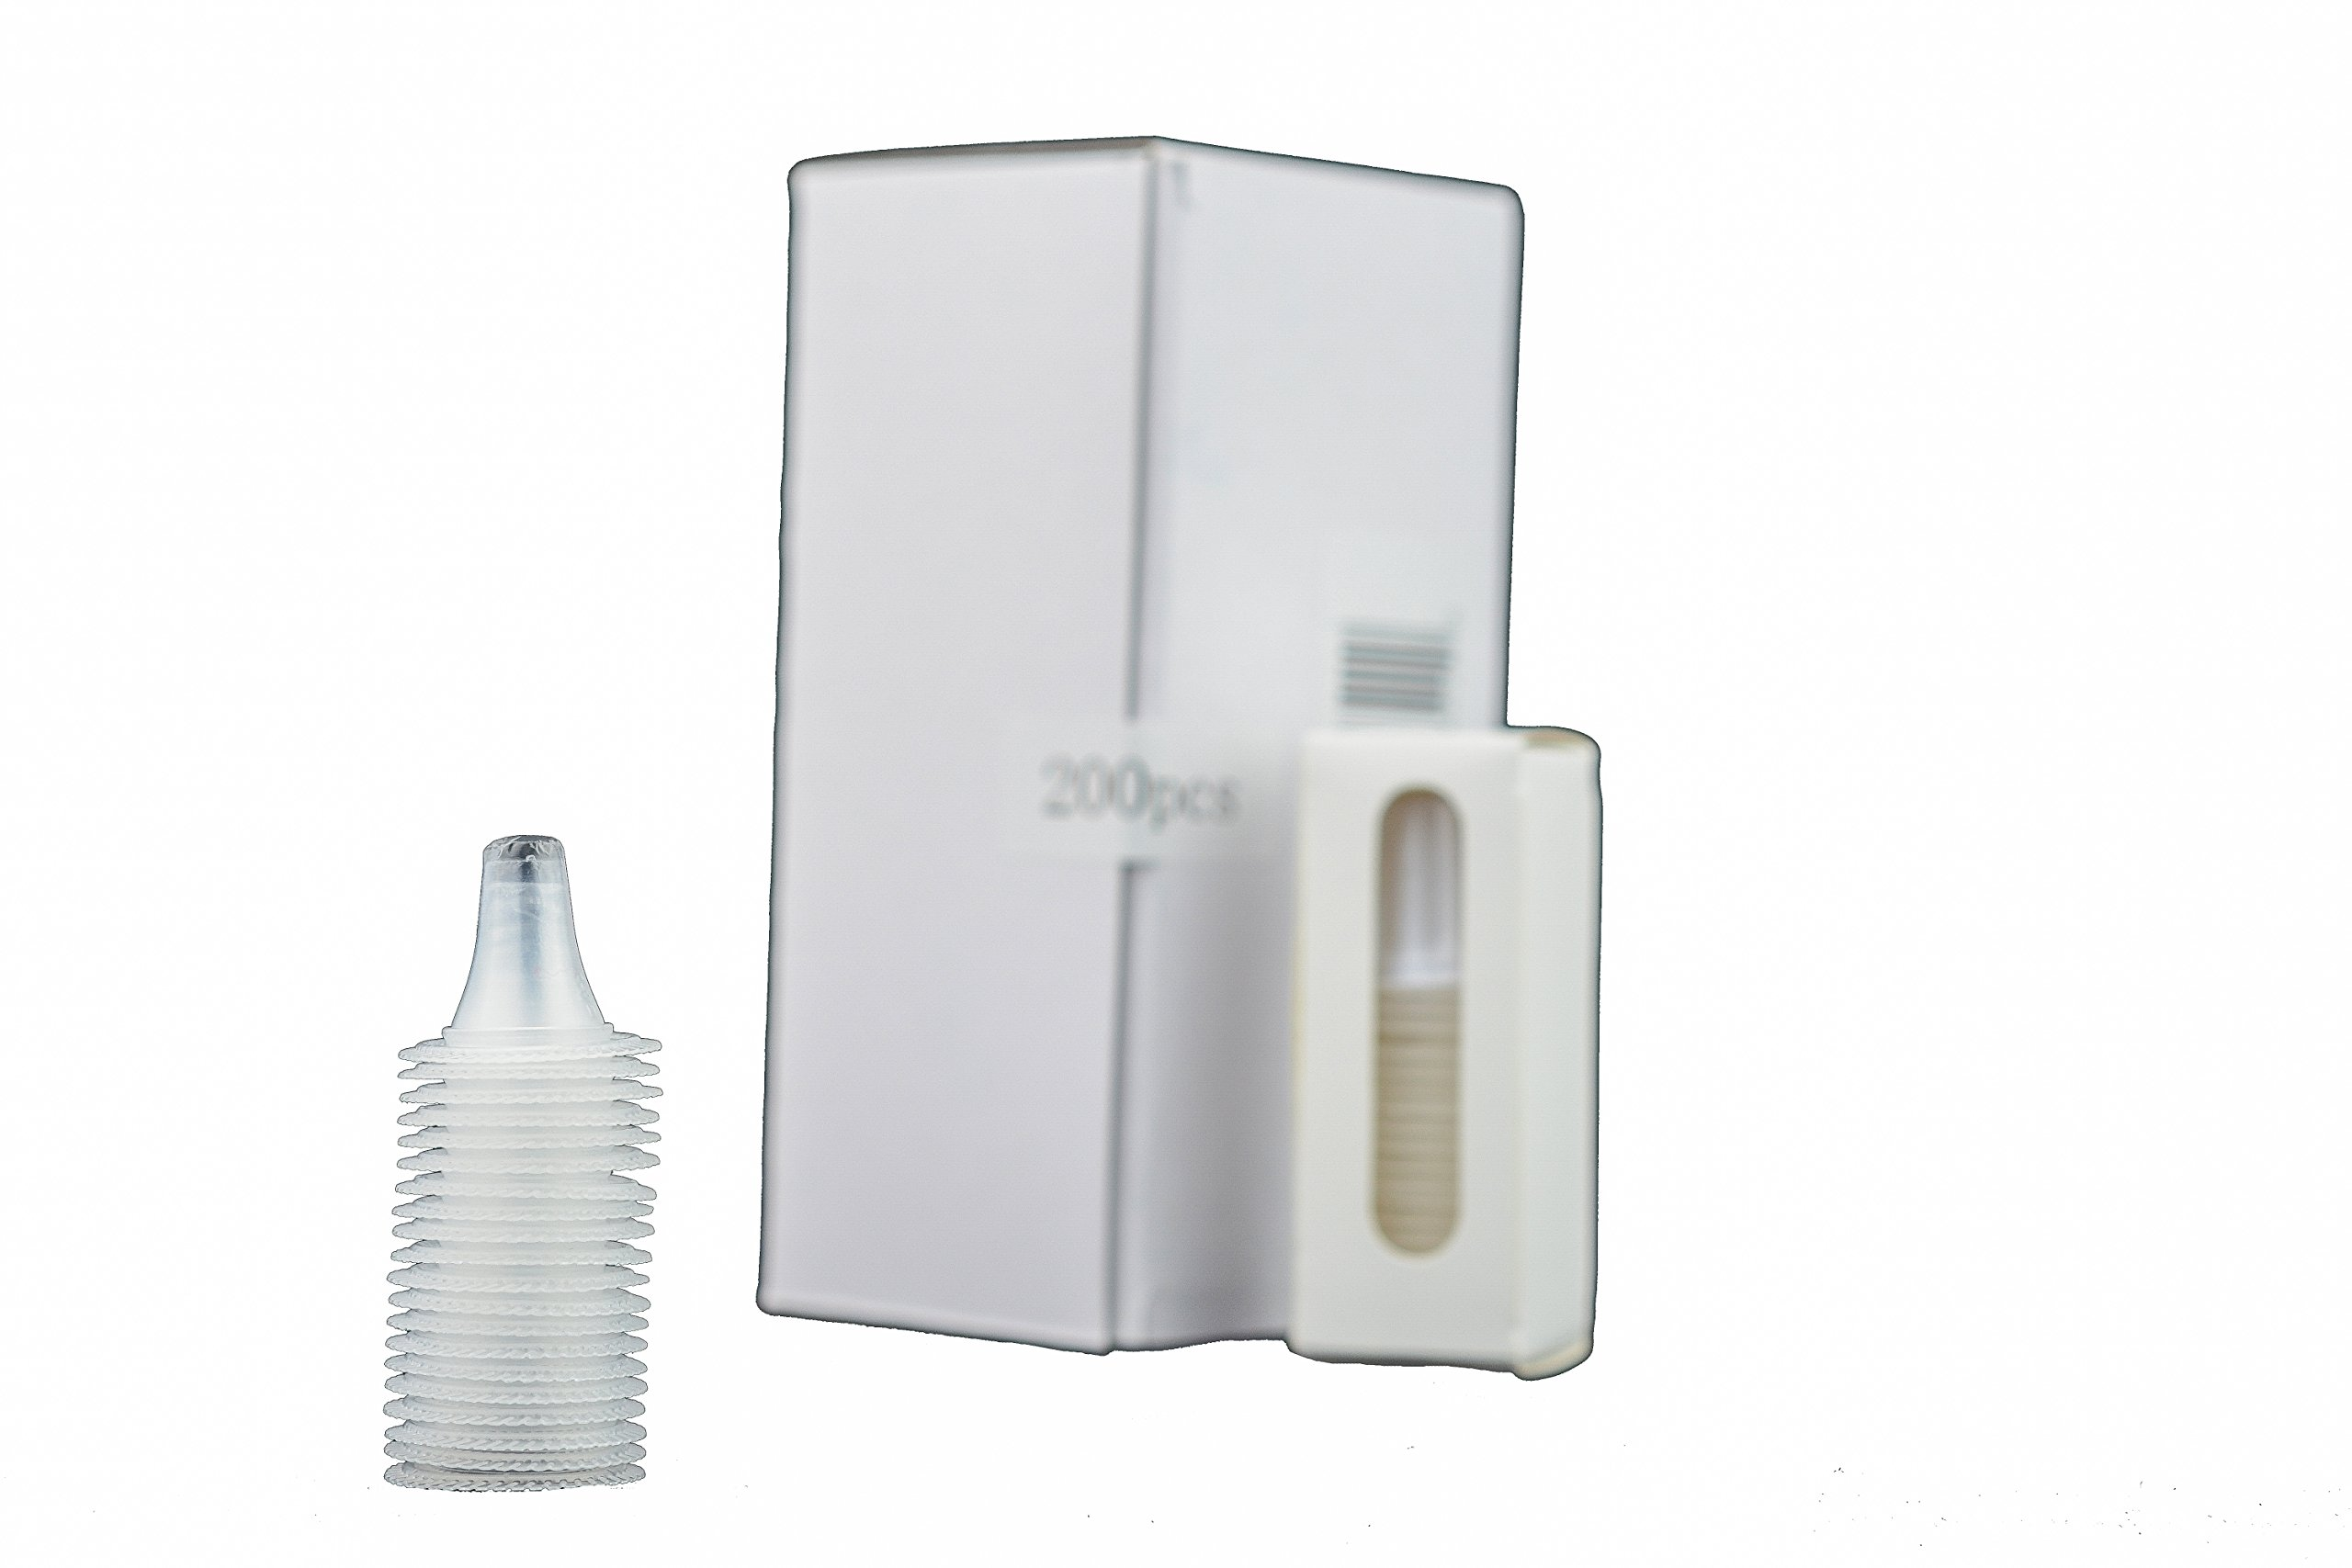 Braun Ear Thermometer DISPOSABLE PROBE COVERS _ Box of 20 000 Lens Filters (Made of closed-cell foam that is laminated with a sheet of high density polyethylene plastic film). P&P Medical Surgical LLC by P&P Medical Surgical